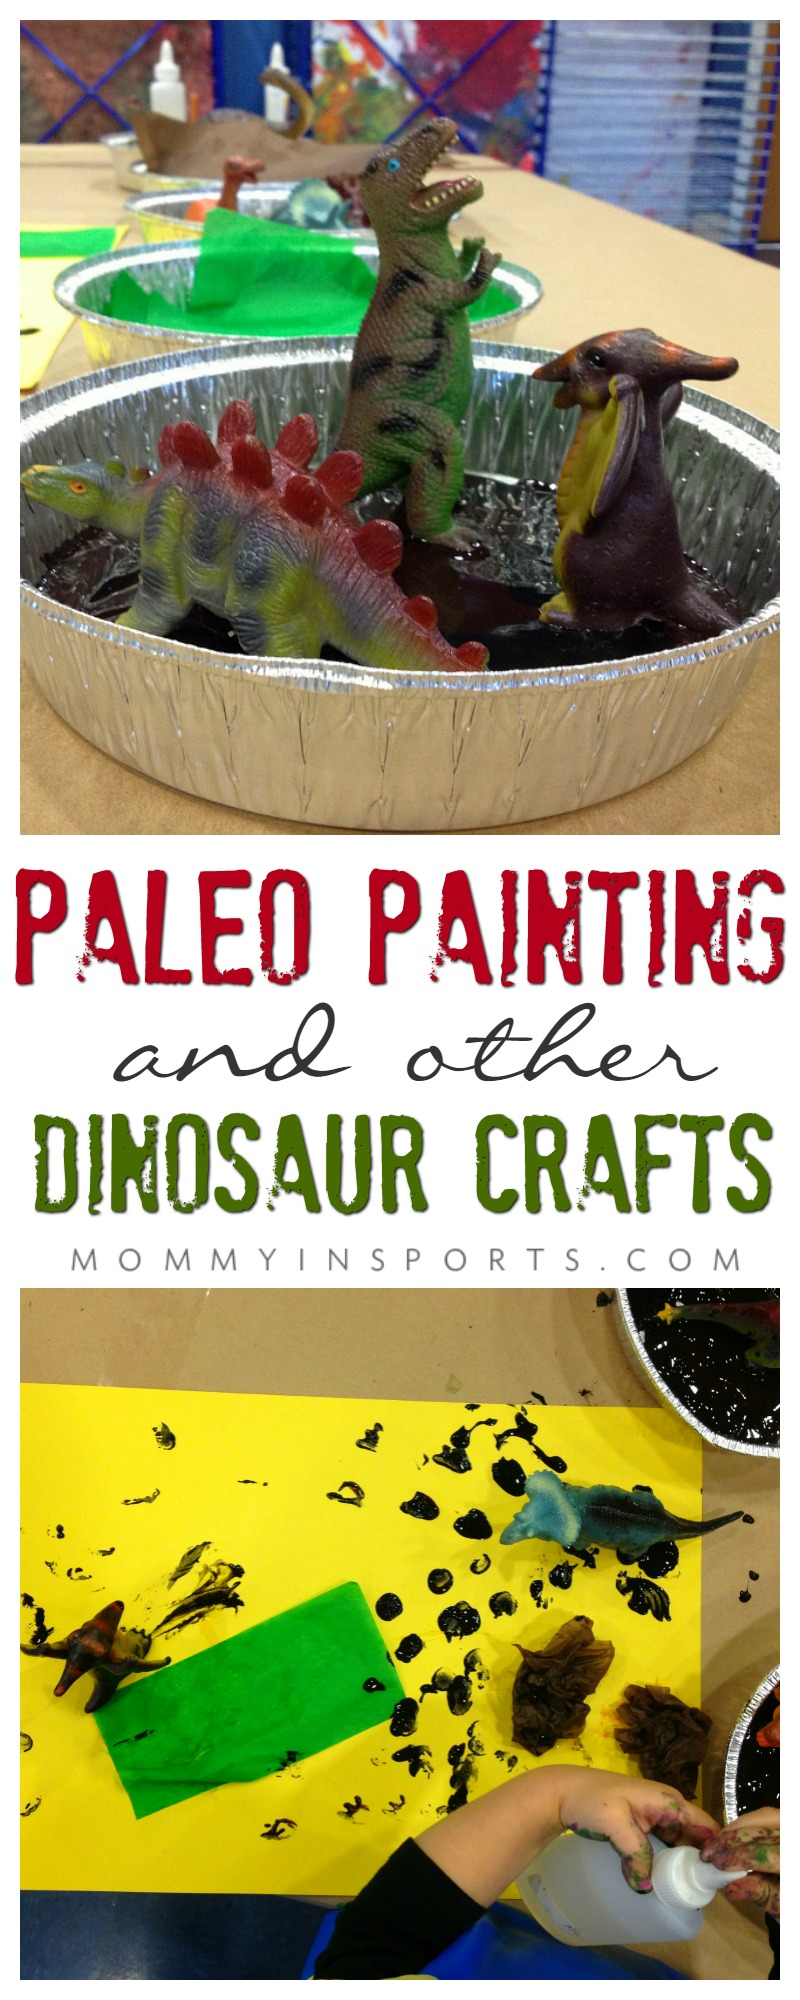 Looking for some dinosaur fun? Try this paleo painting, it's so fun for kids to use other mediums to paint! Also included are the best dinosaur books and sensory bins! The perfect dinosaur crafts for your budding artists!